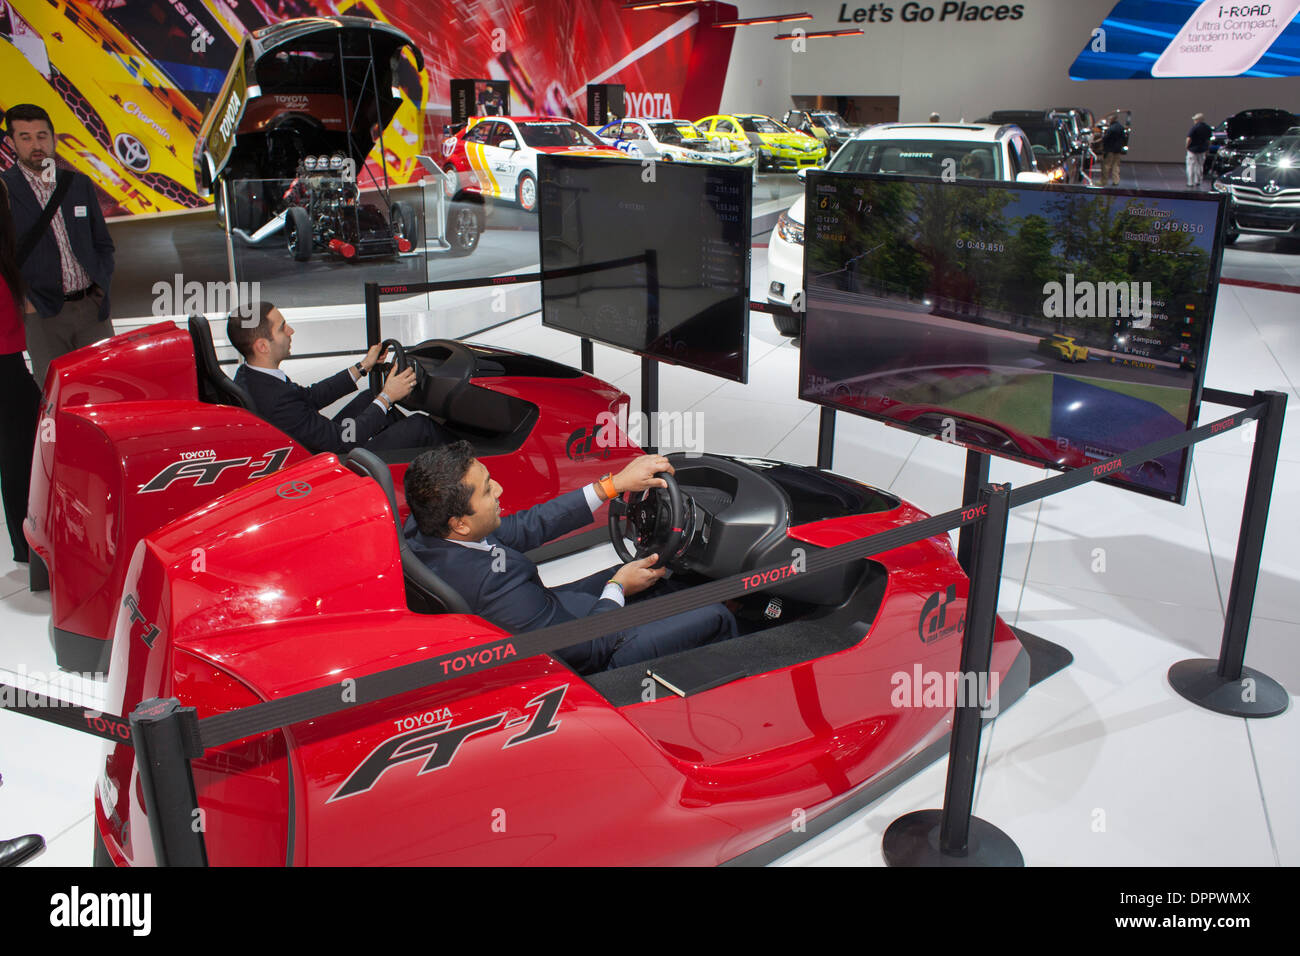 Detroit, Michigan - Driving simulators styled like the Toyota FT-1 at the North American International Auto Show. - Stock Image